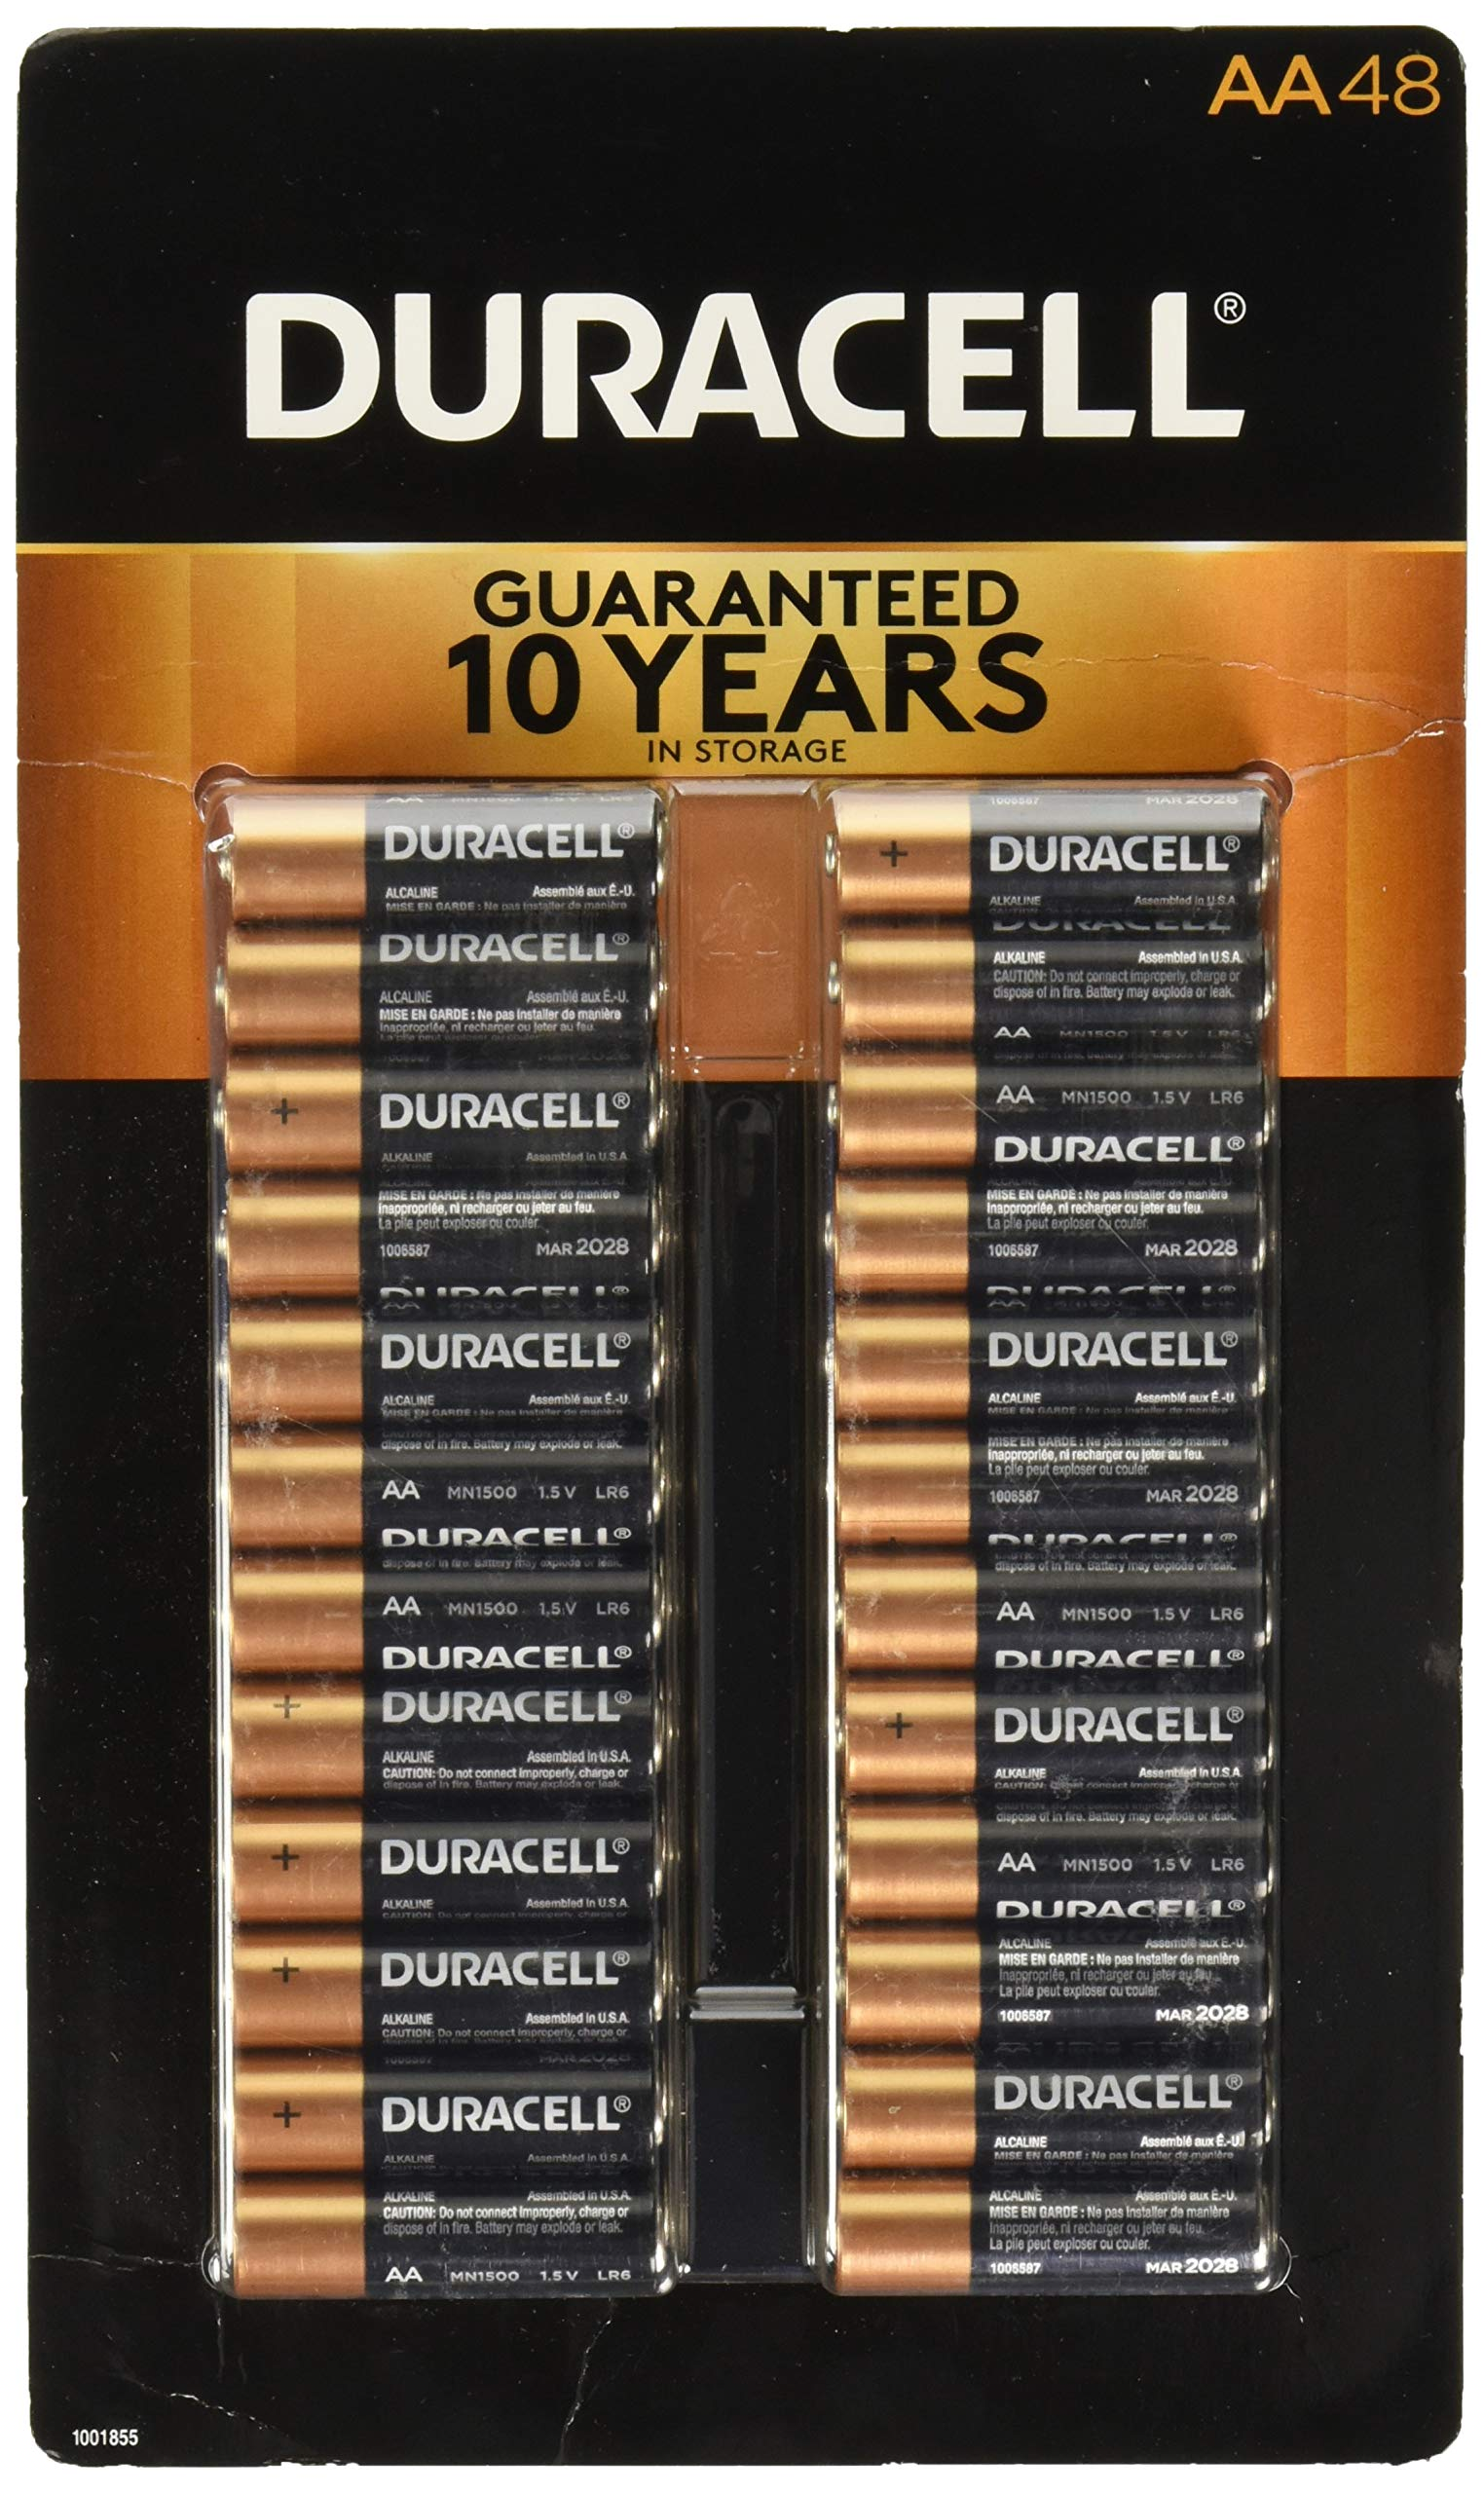 Duracell Coppertop Alkaline-Manganese Dioxide AA Battery, 1.5V, (Pack of 48) by Duracell